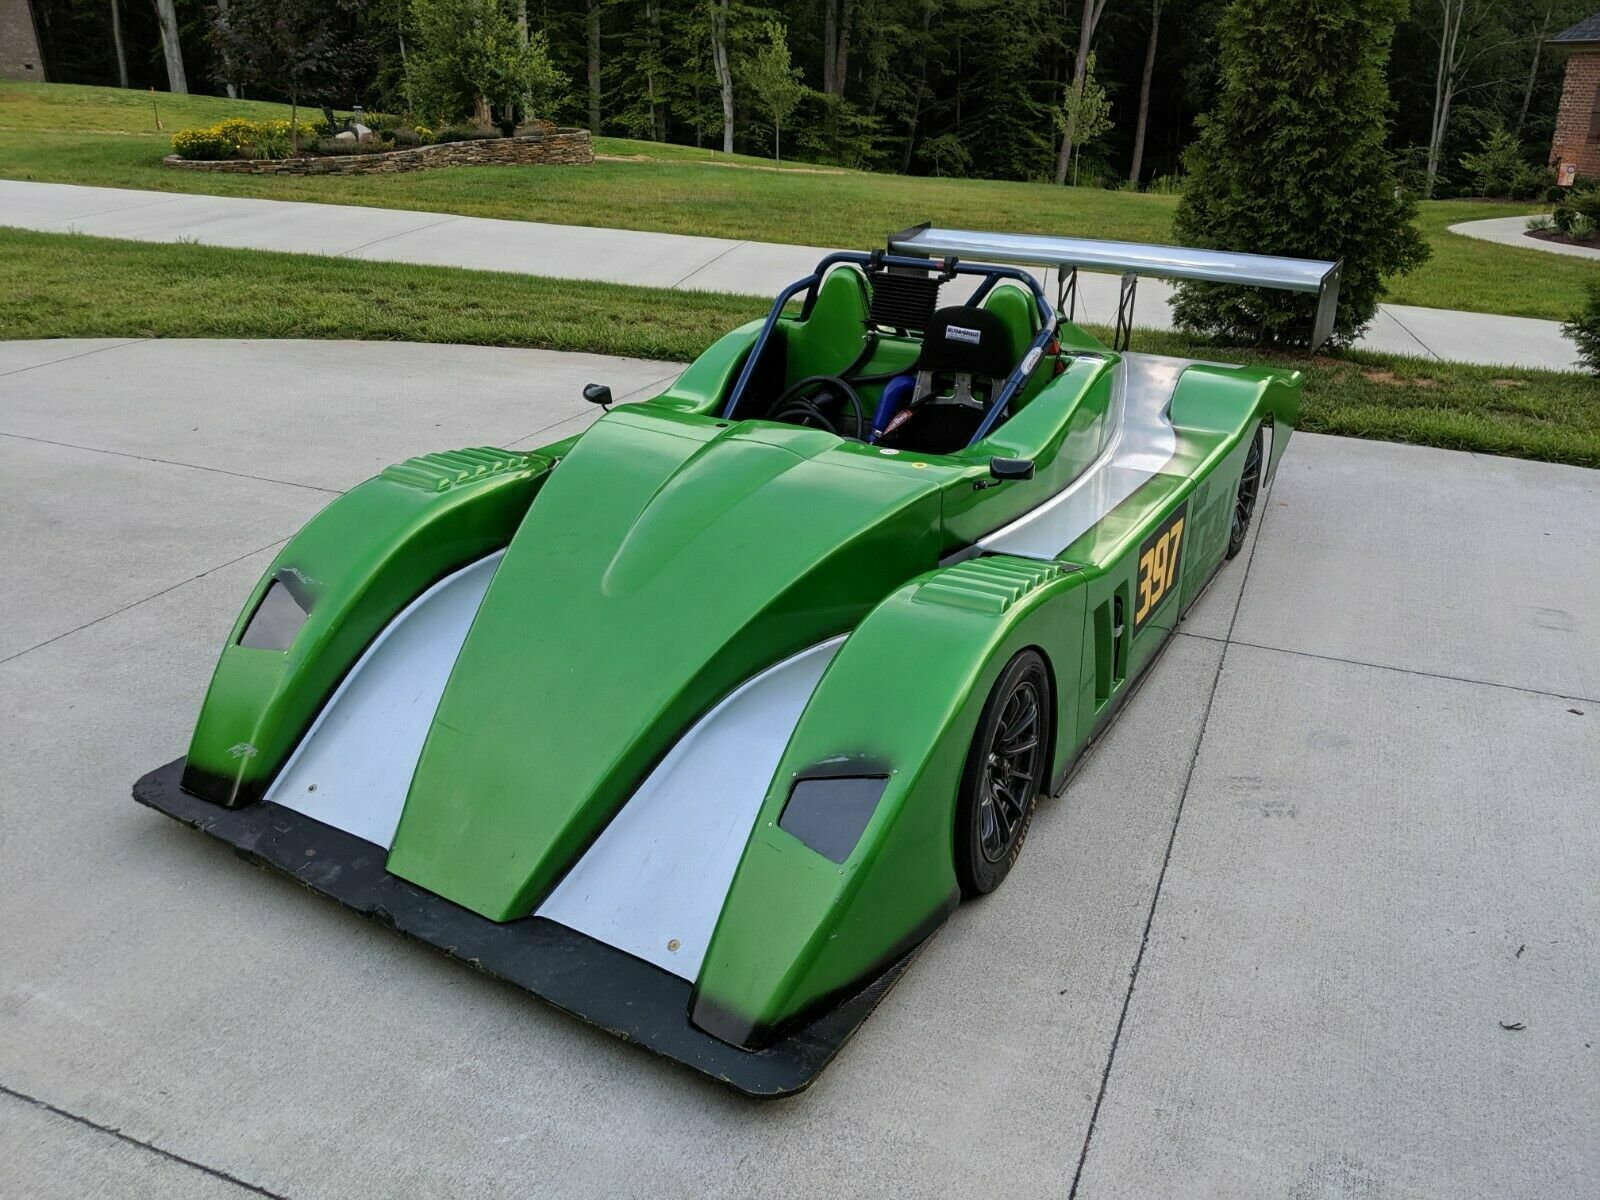 Green Monster: This LMR Prototype Has A 500hp Turbocharged Hyabusa Engine And An Amazingly Cheap Selling Price